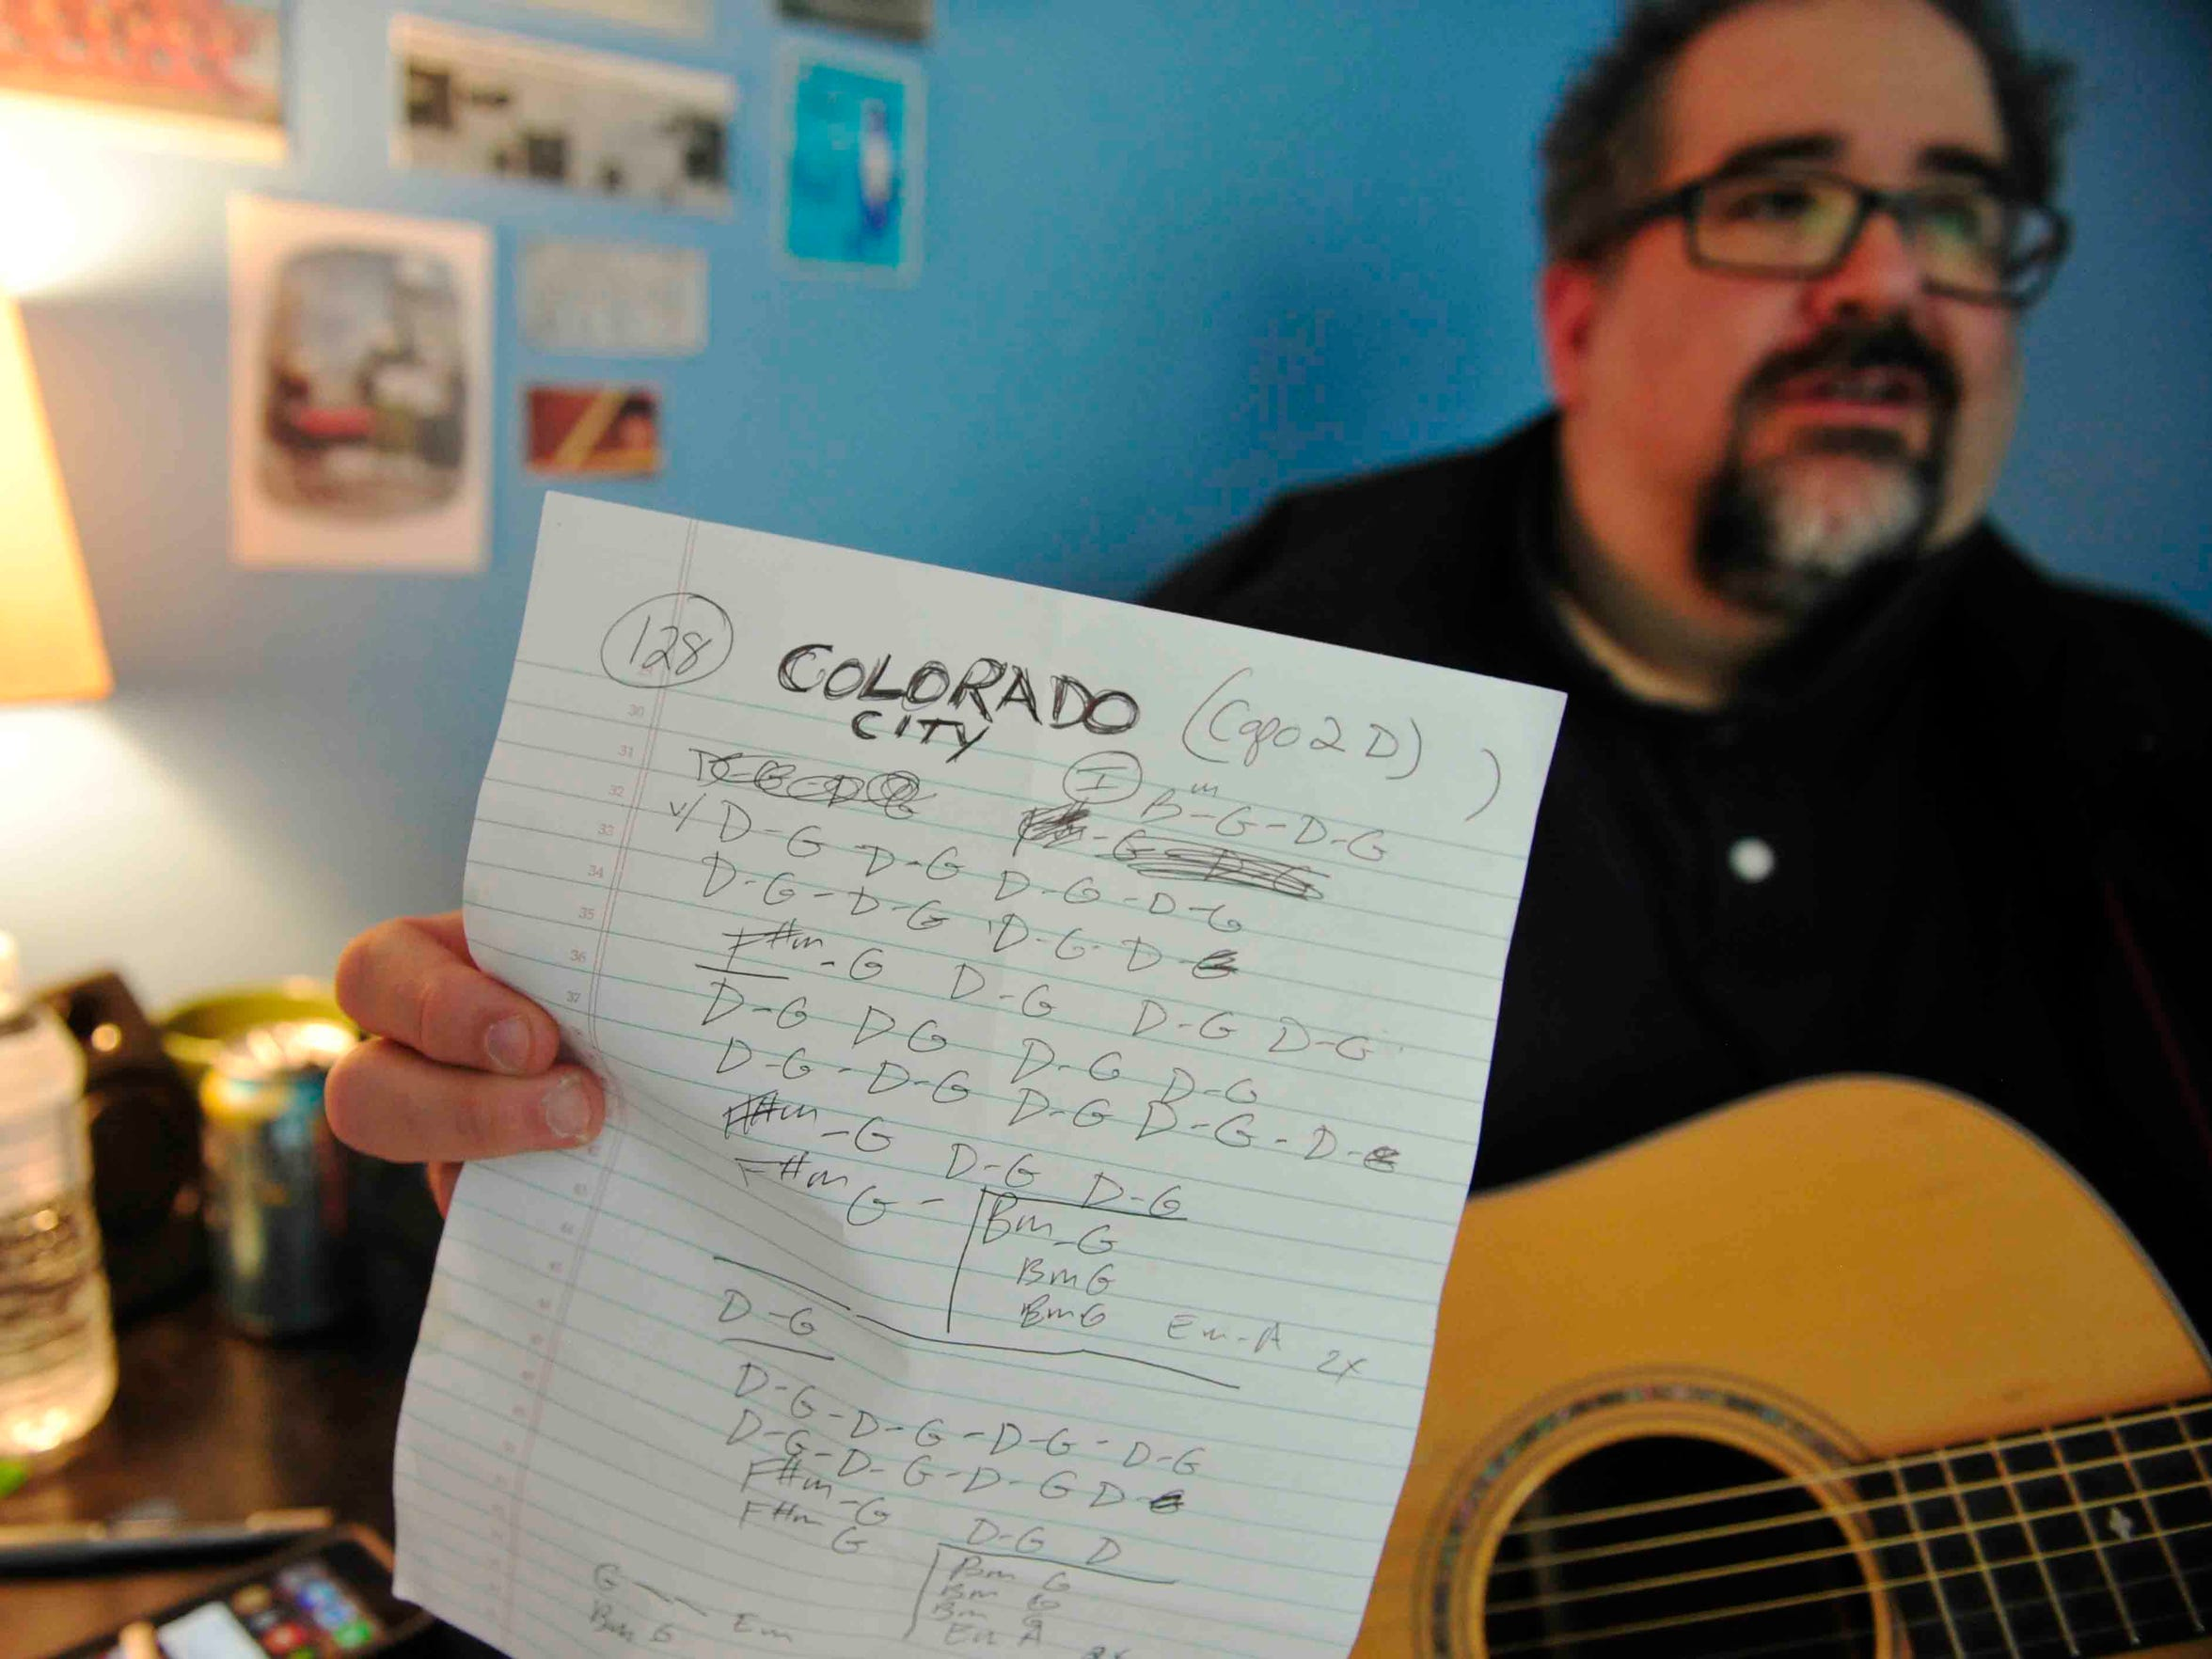 Jim Reilley holds the key sheet for the New Dylans song 'Colorado City' while practicing at his Berry Hill songwriting office on July 28, 2014.